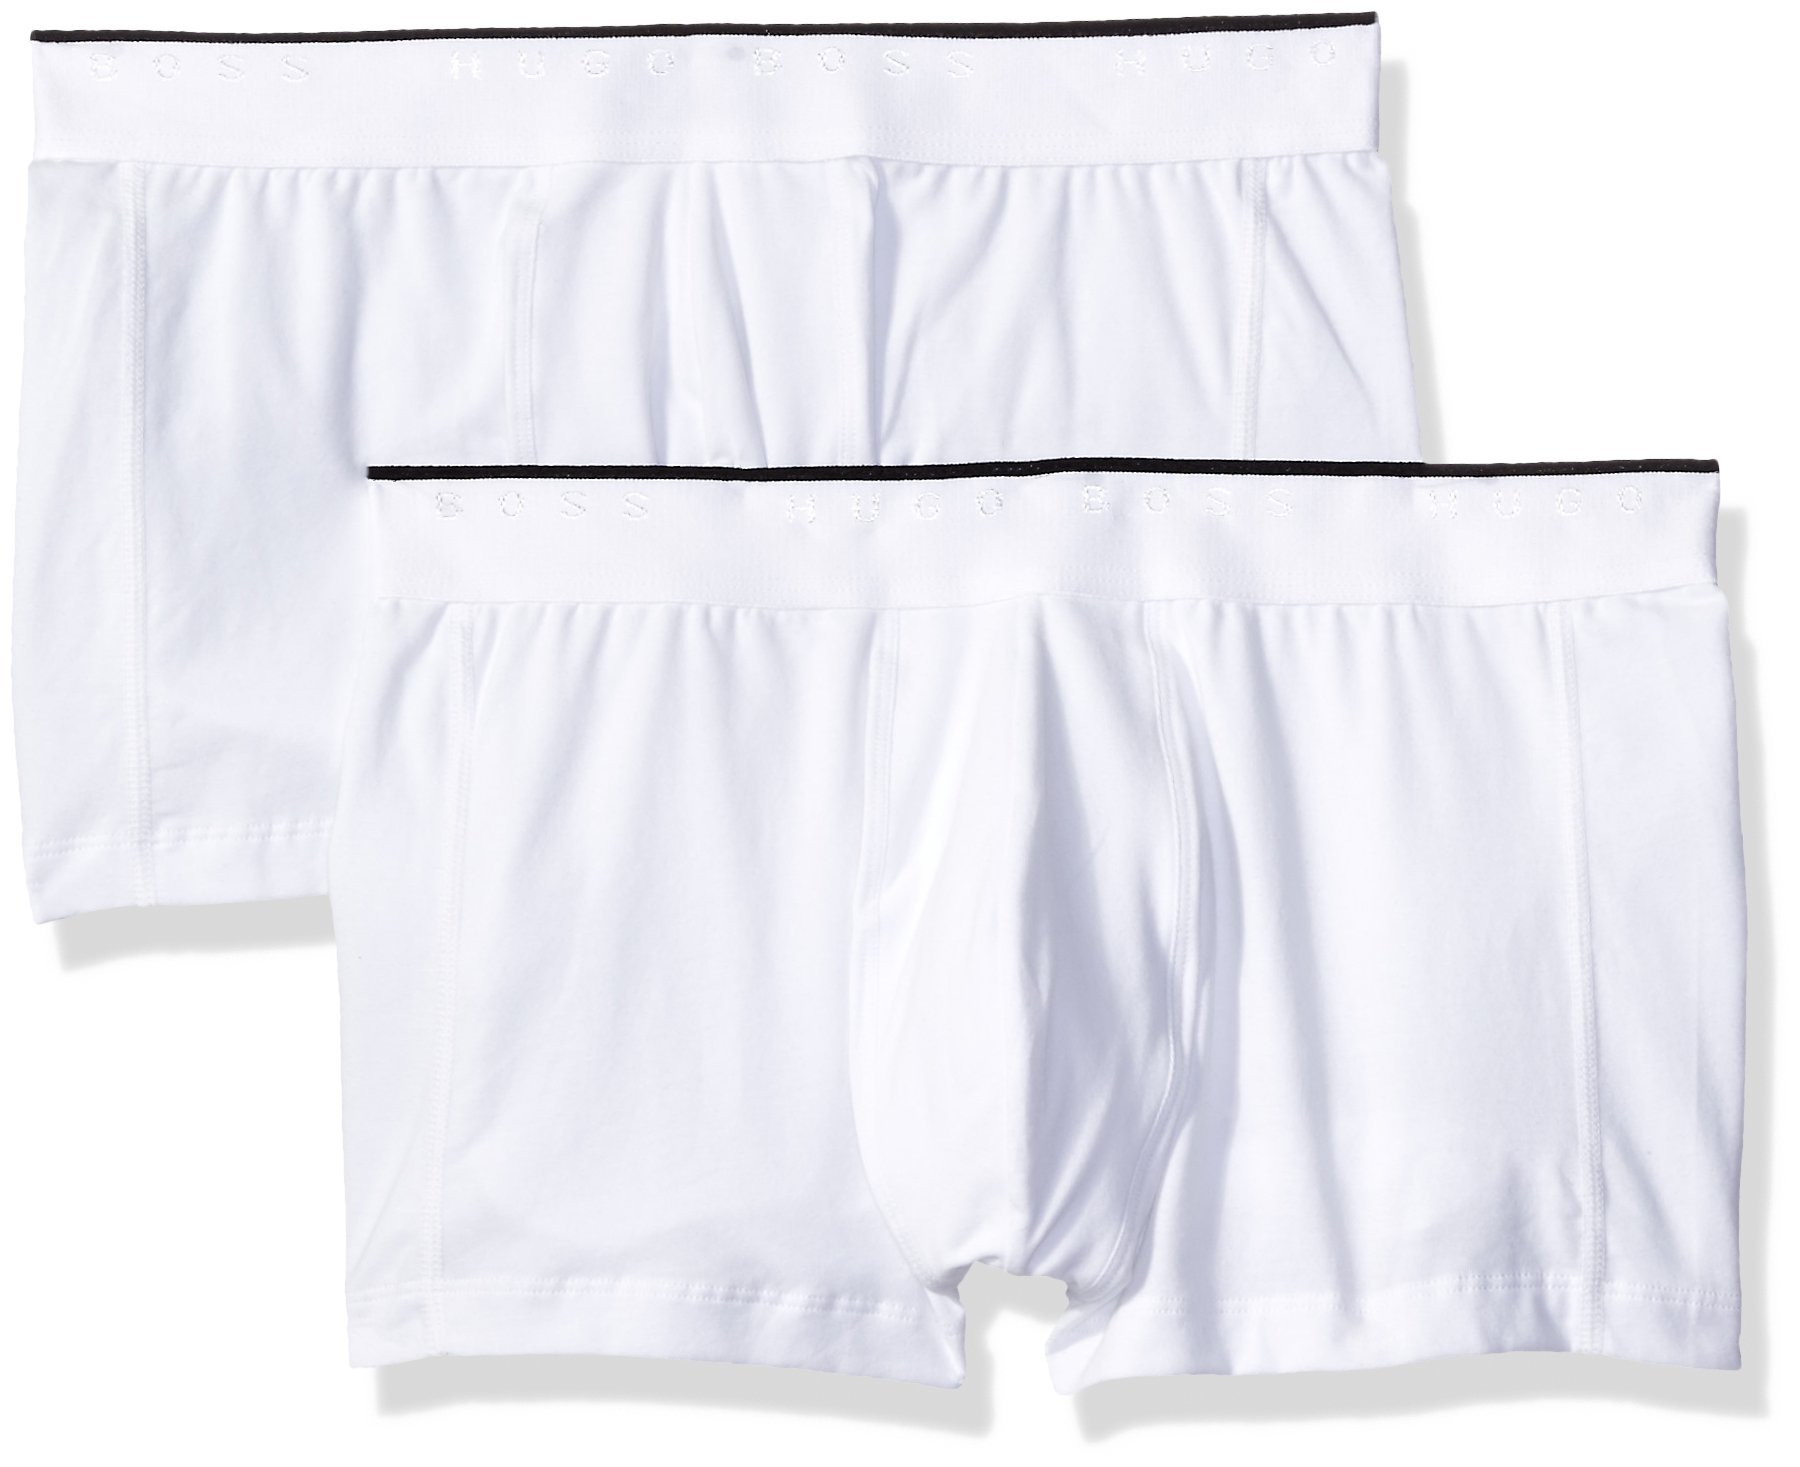 Hugo Boss BOSS Men's 2-Pack Excite Cotton Stretch Trunk, White, Medium